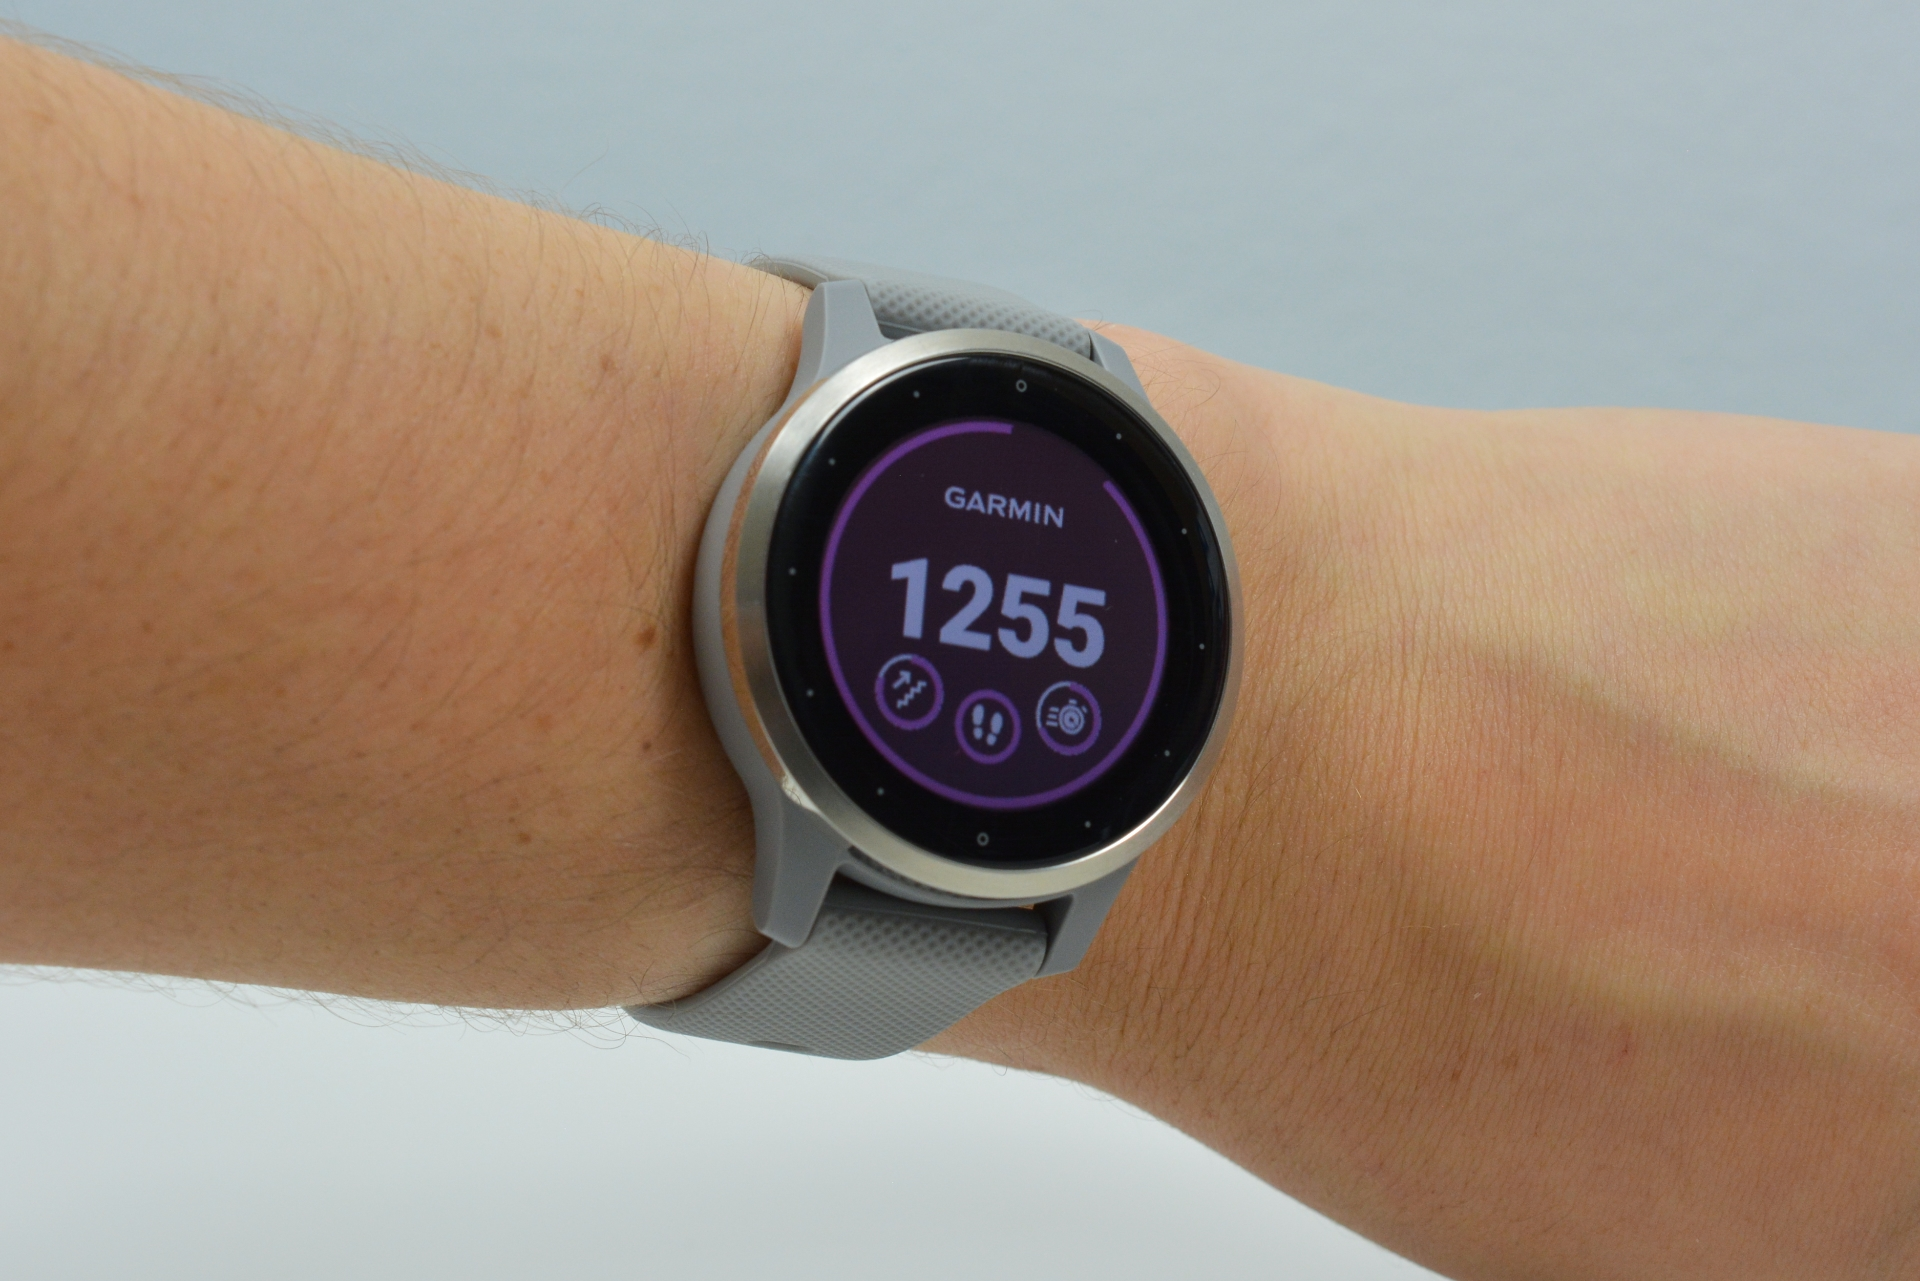 The Garmin Vivoactive 4s.